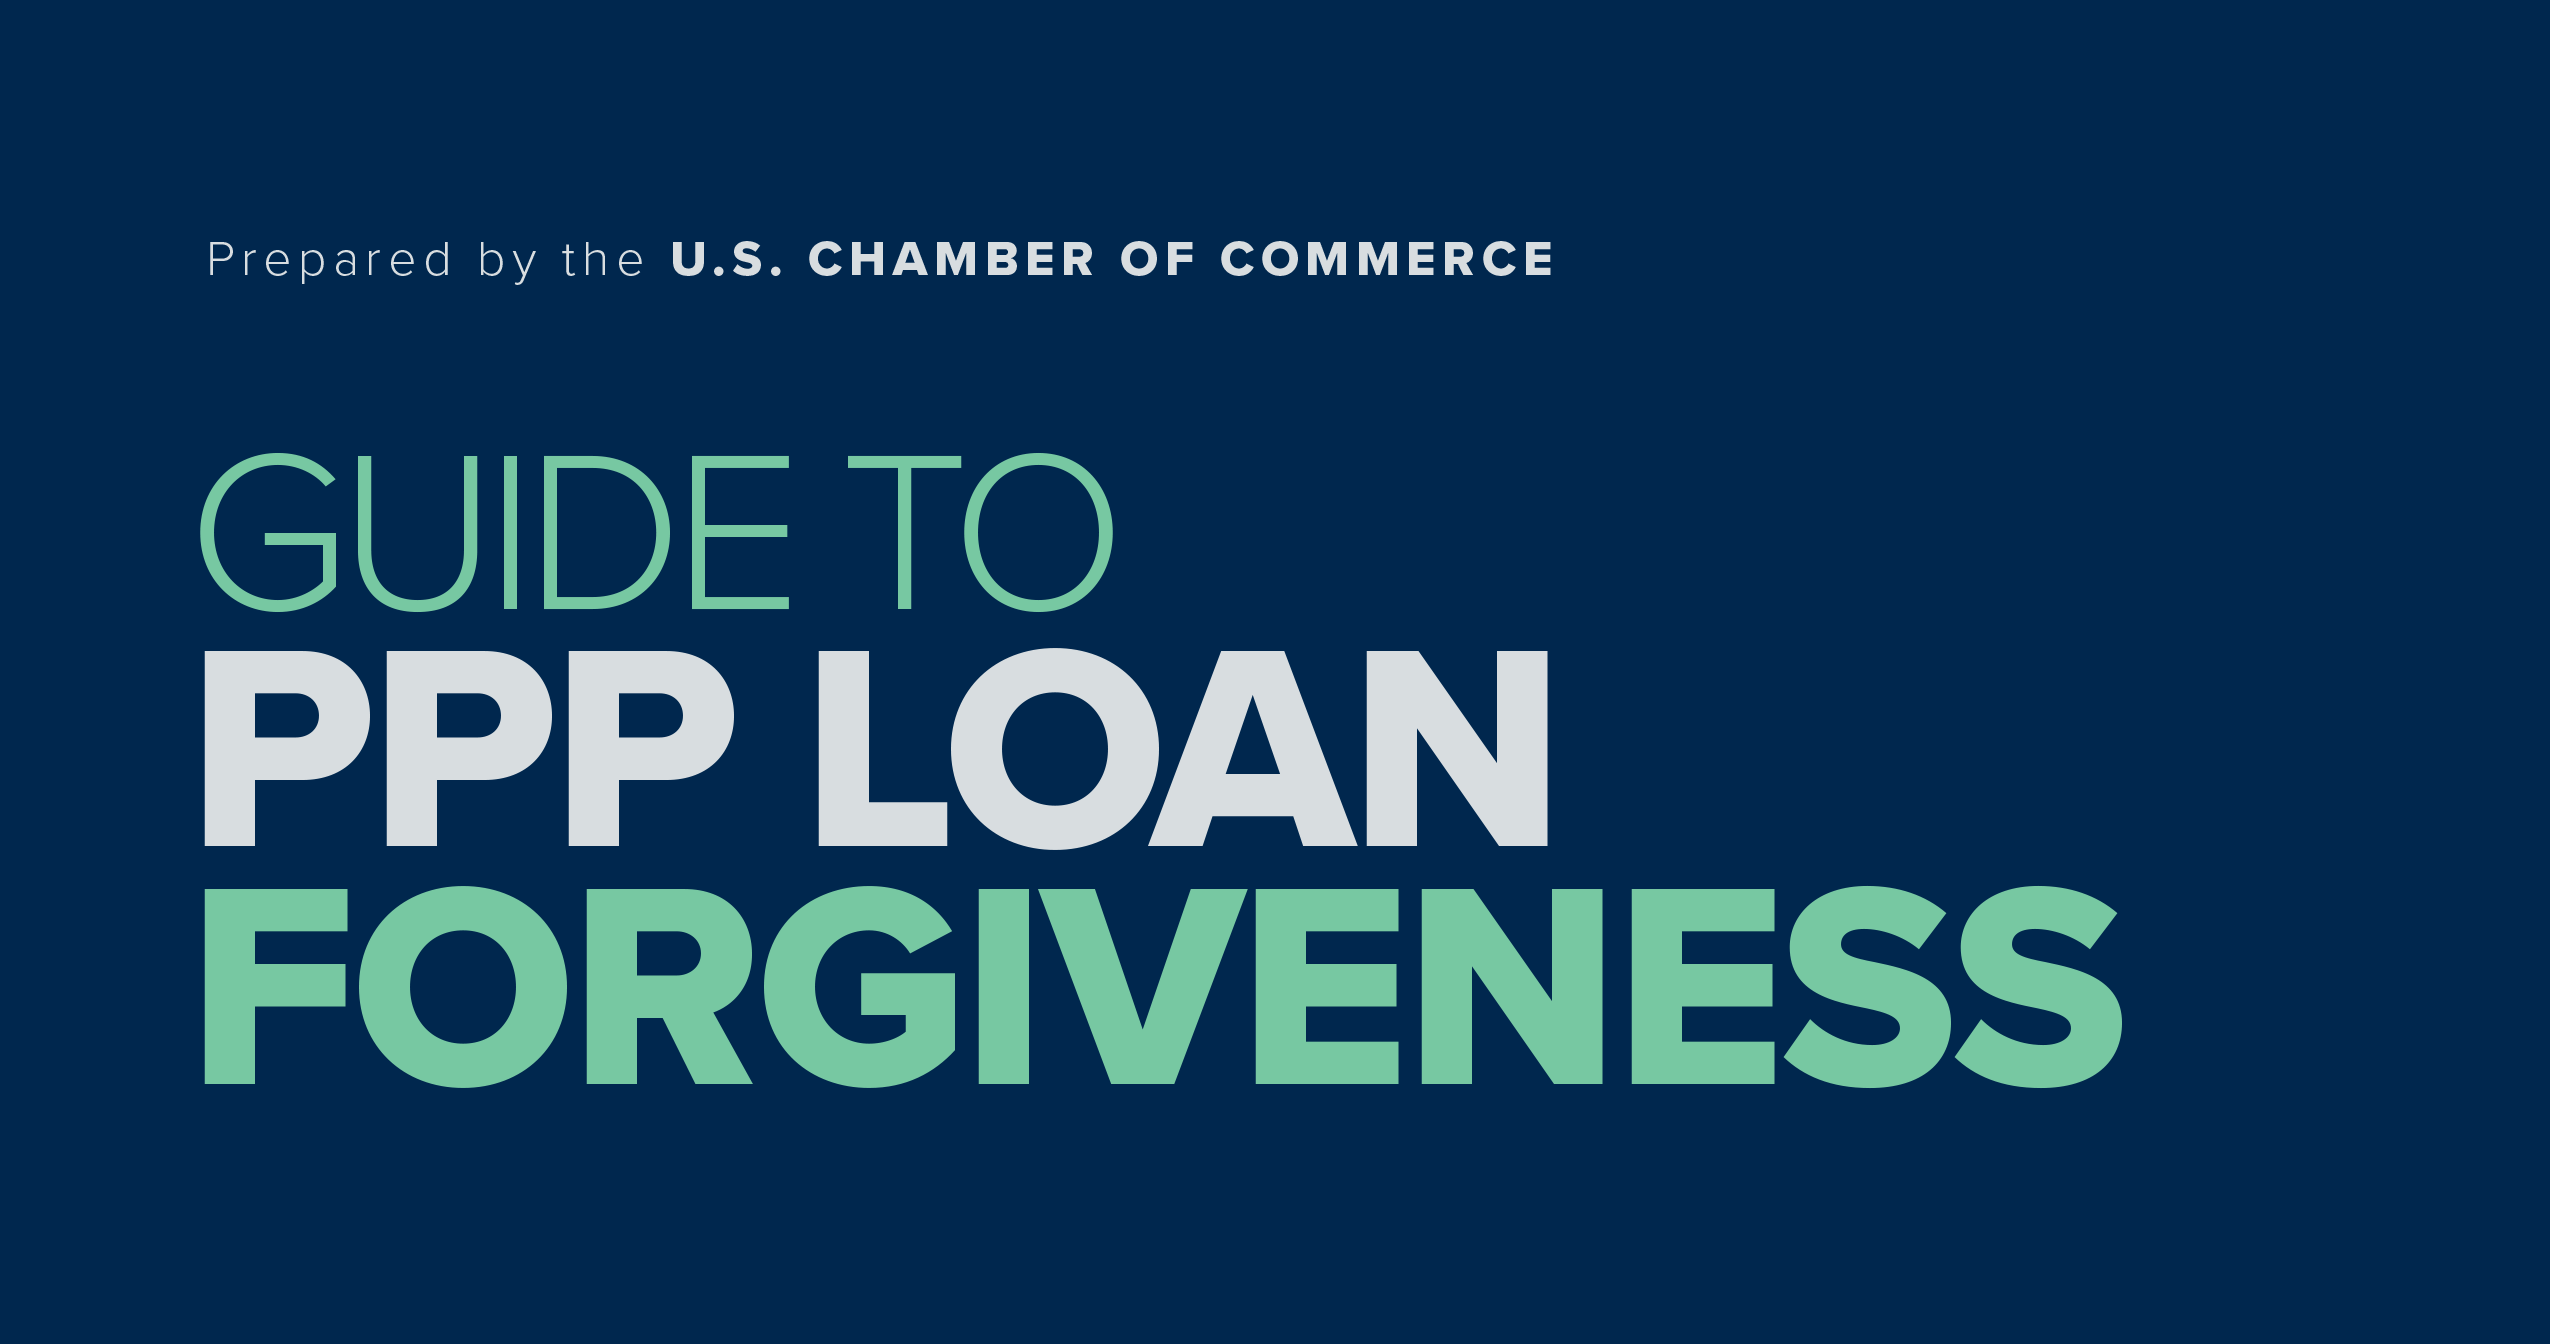 USCOC Guide to PPP Loan Forgiveness